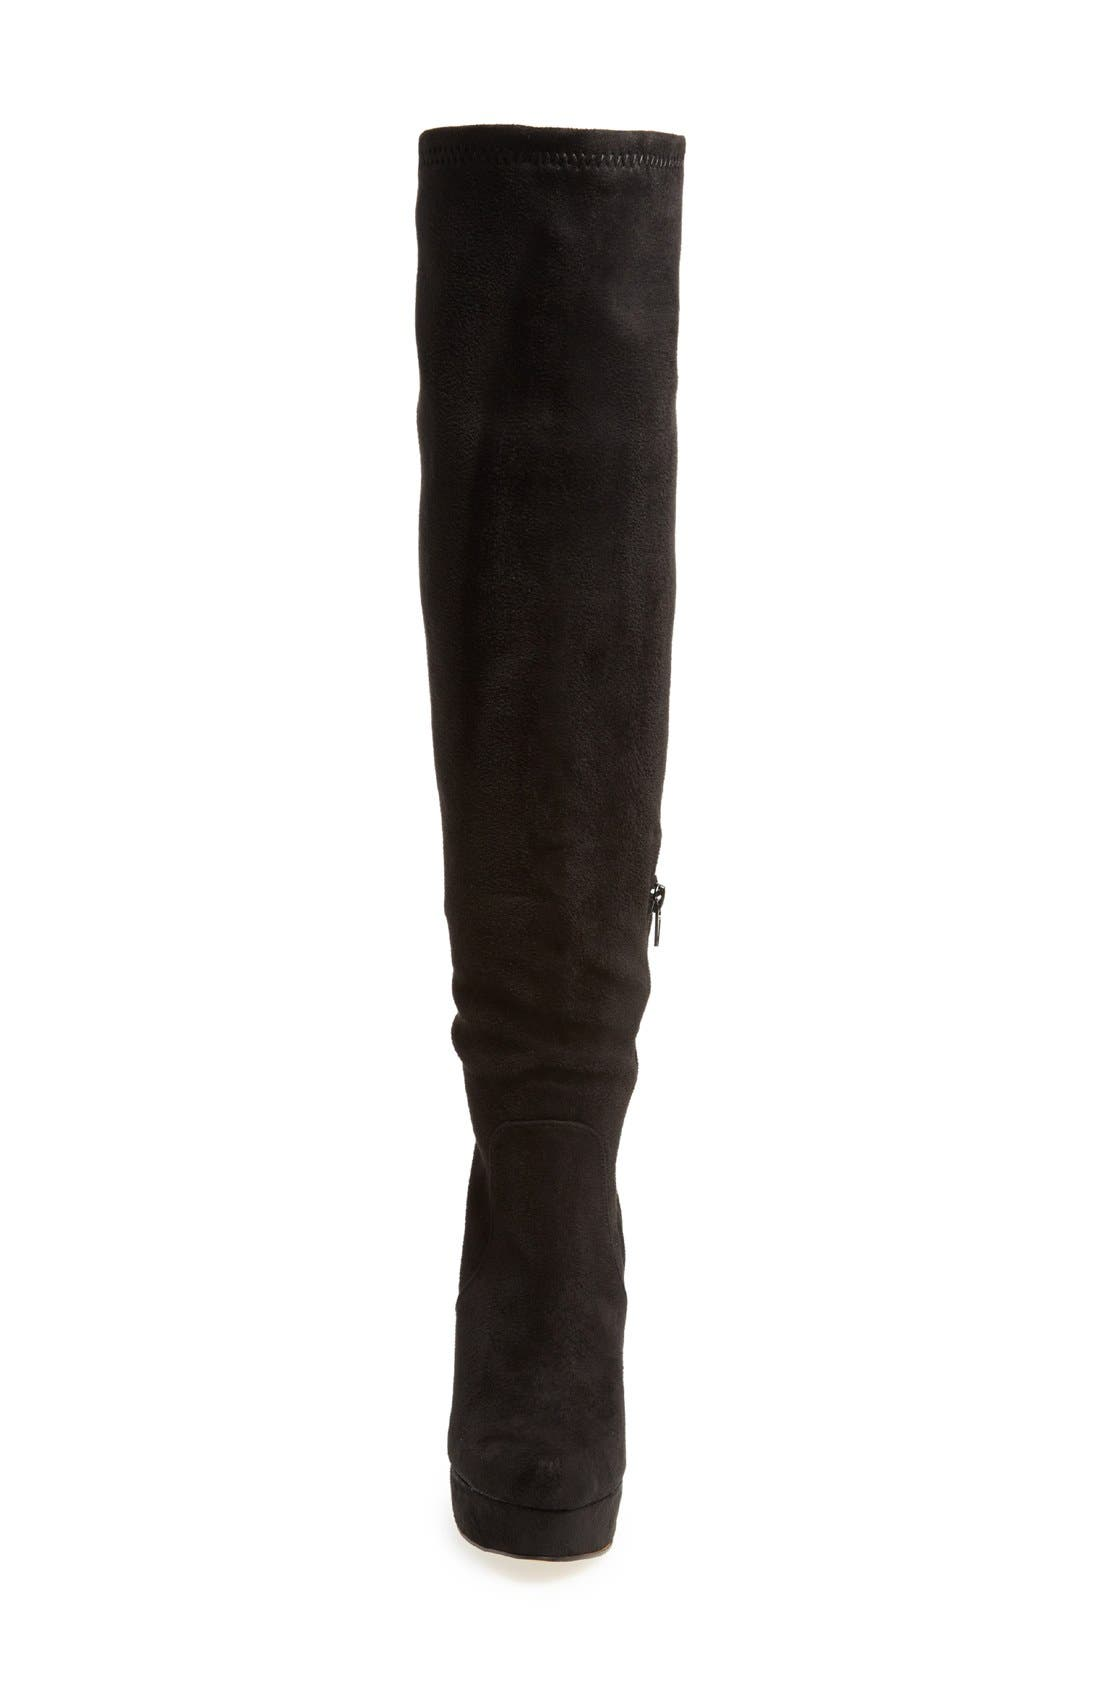 Alternate Image 3  - Chinese Laundry 'Luster' Over the Knee Platform Boot (Women)